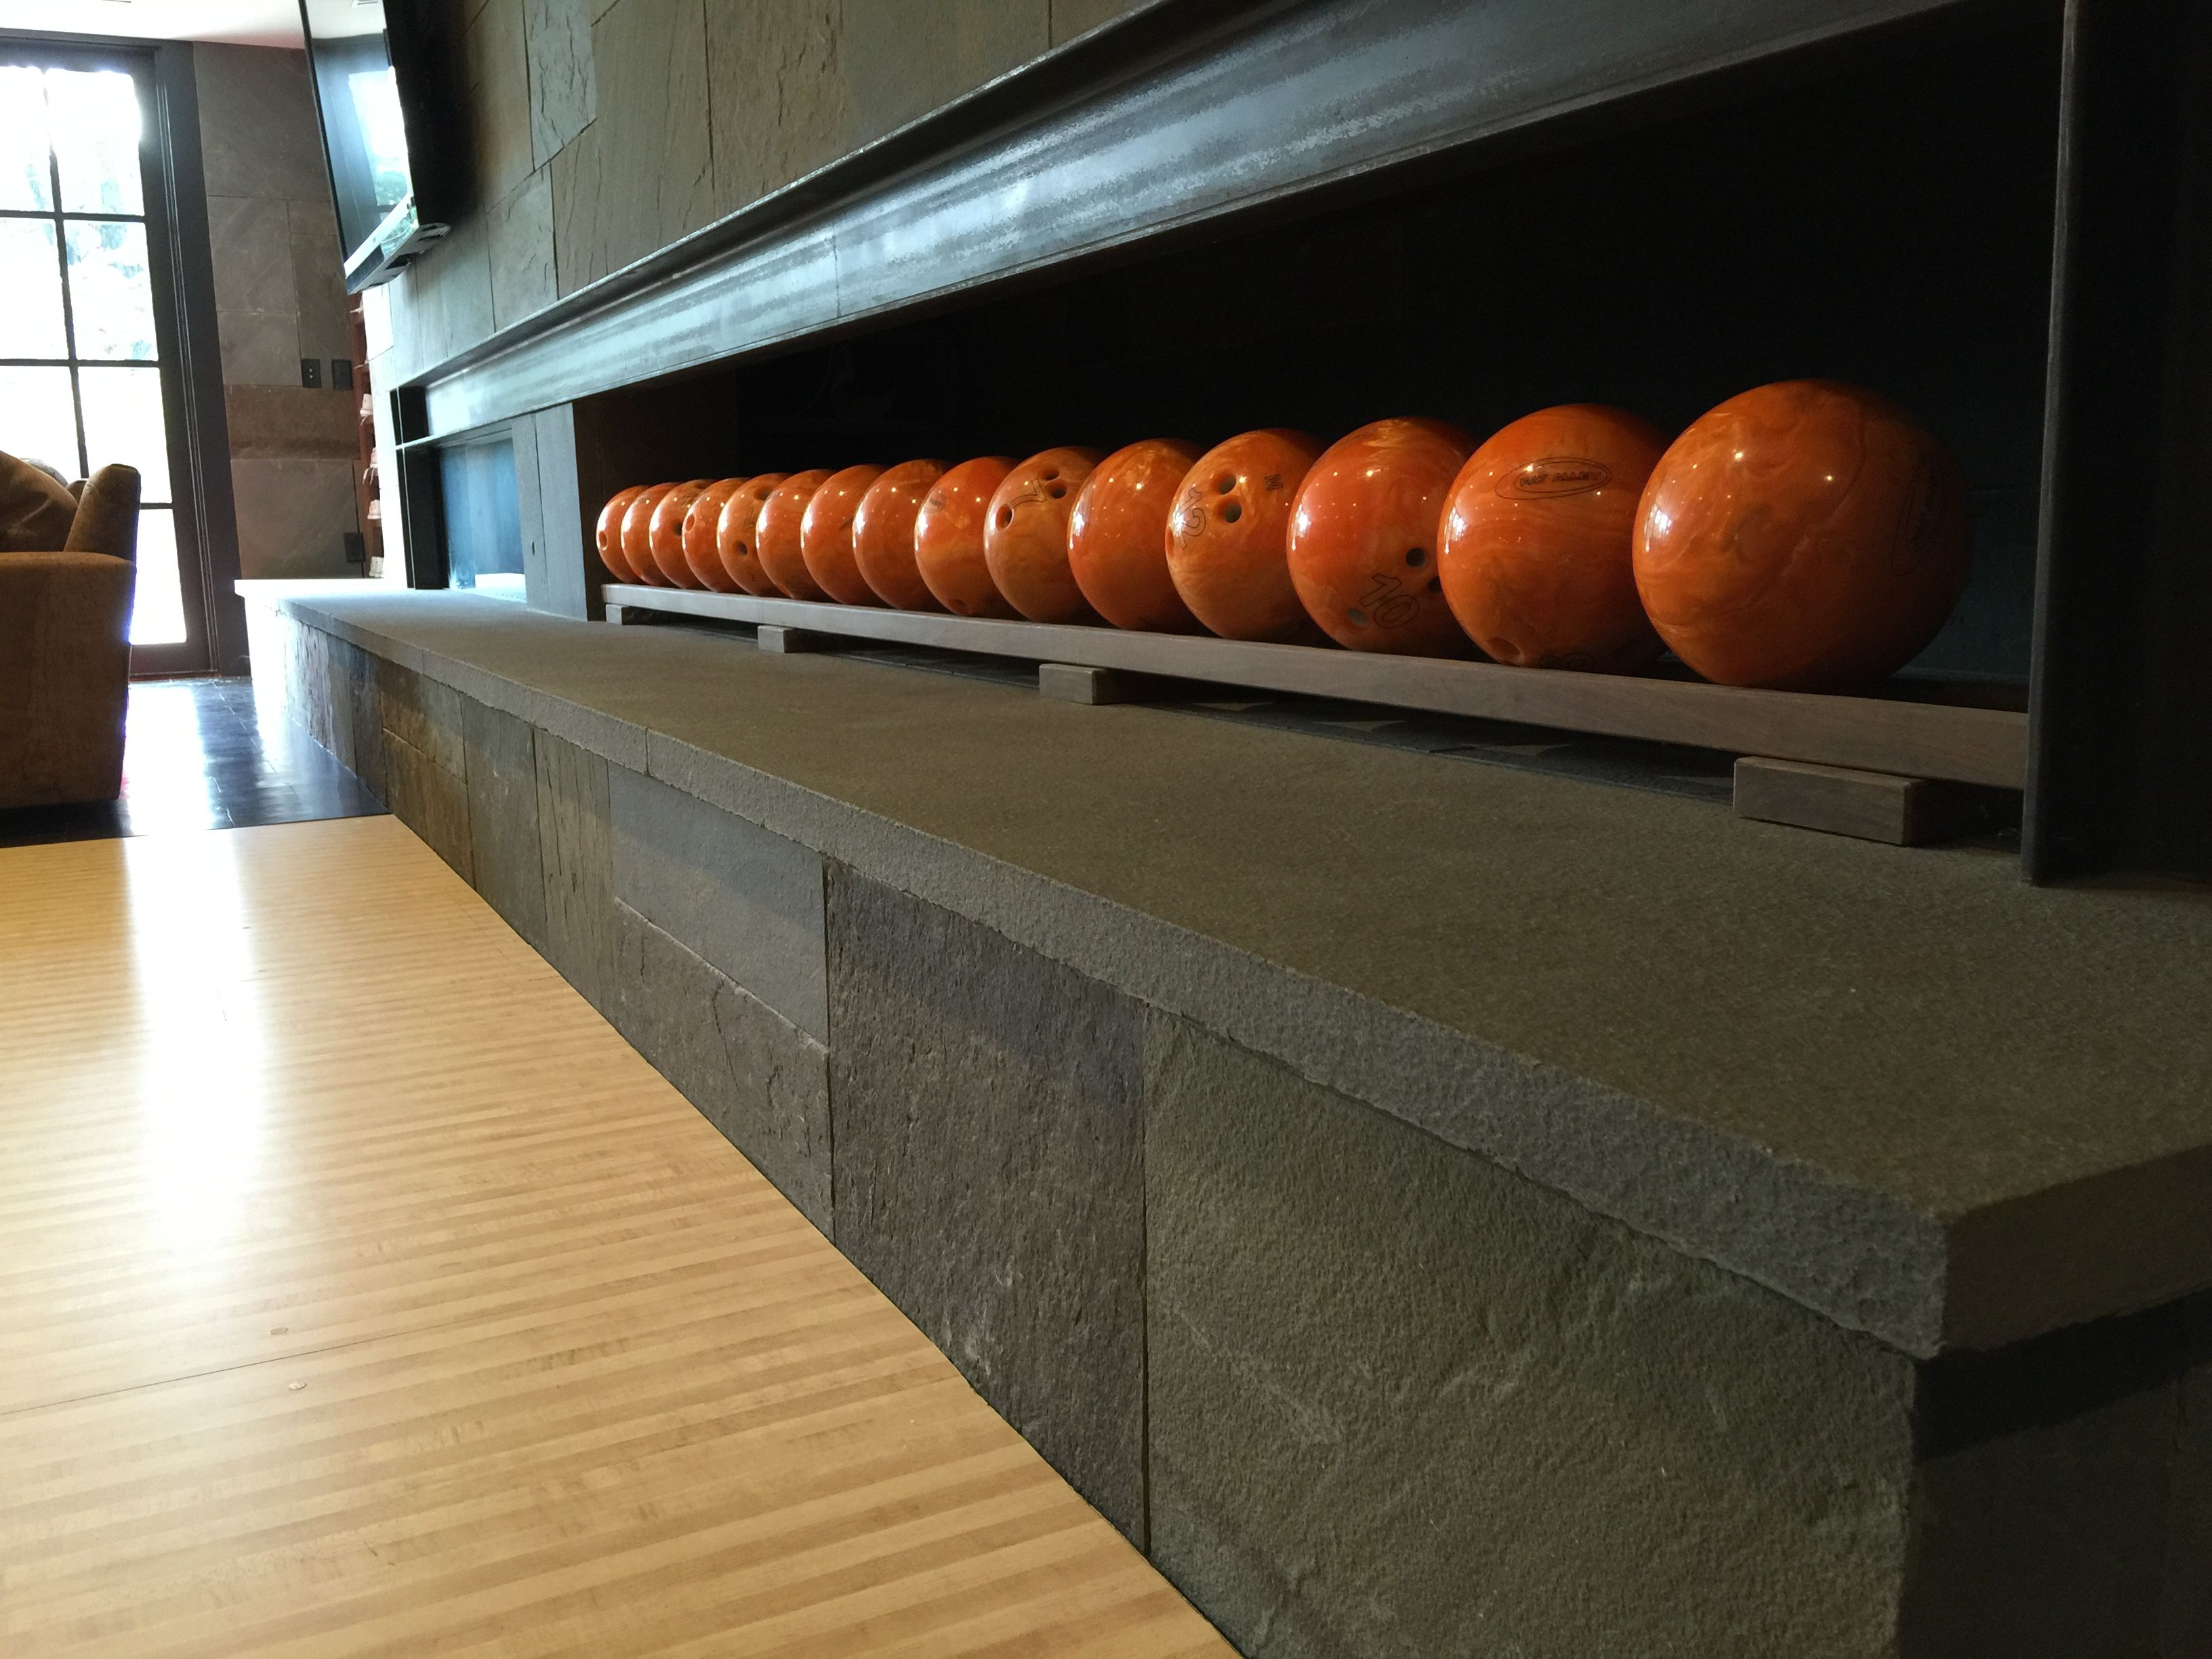 Fireplace style rack for home bowling alley ball storage